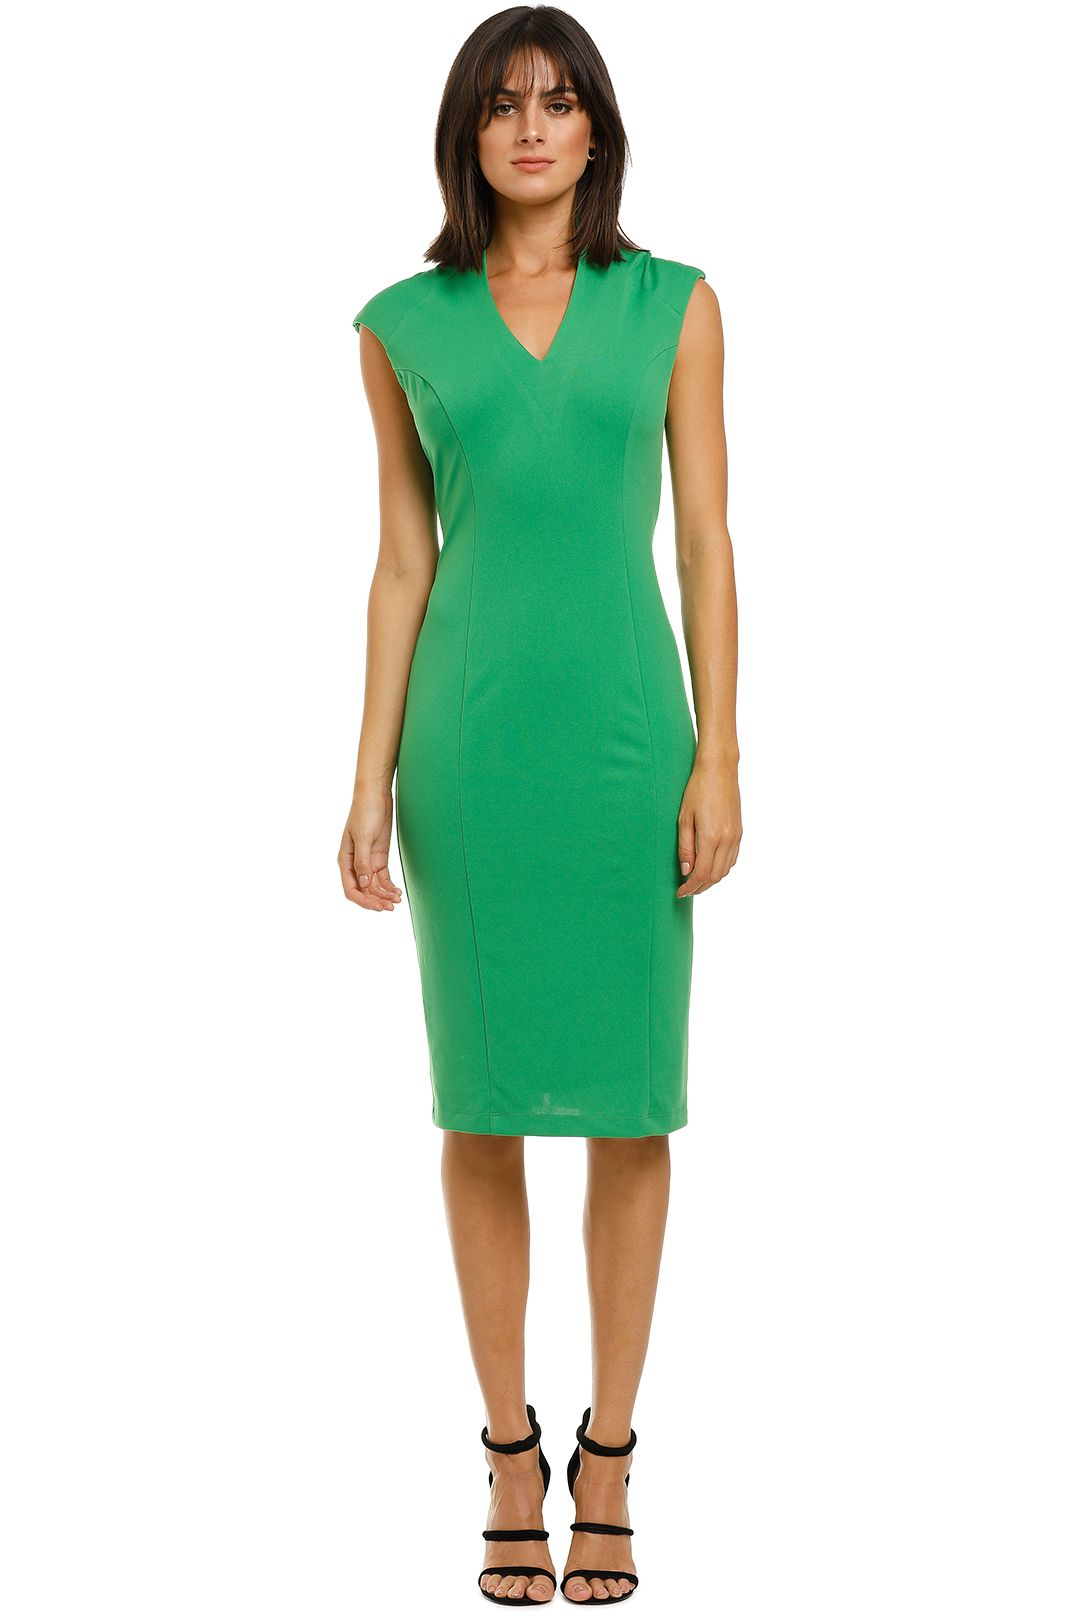 Alexia-Admor-Katrina-V-Neck-Midi-Dress-Green-Front